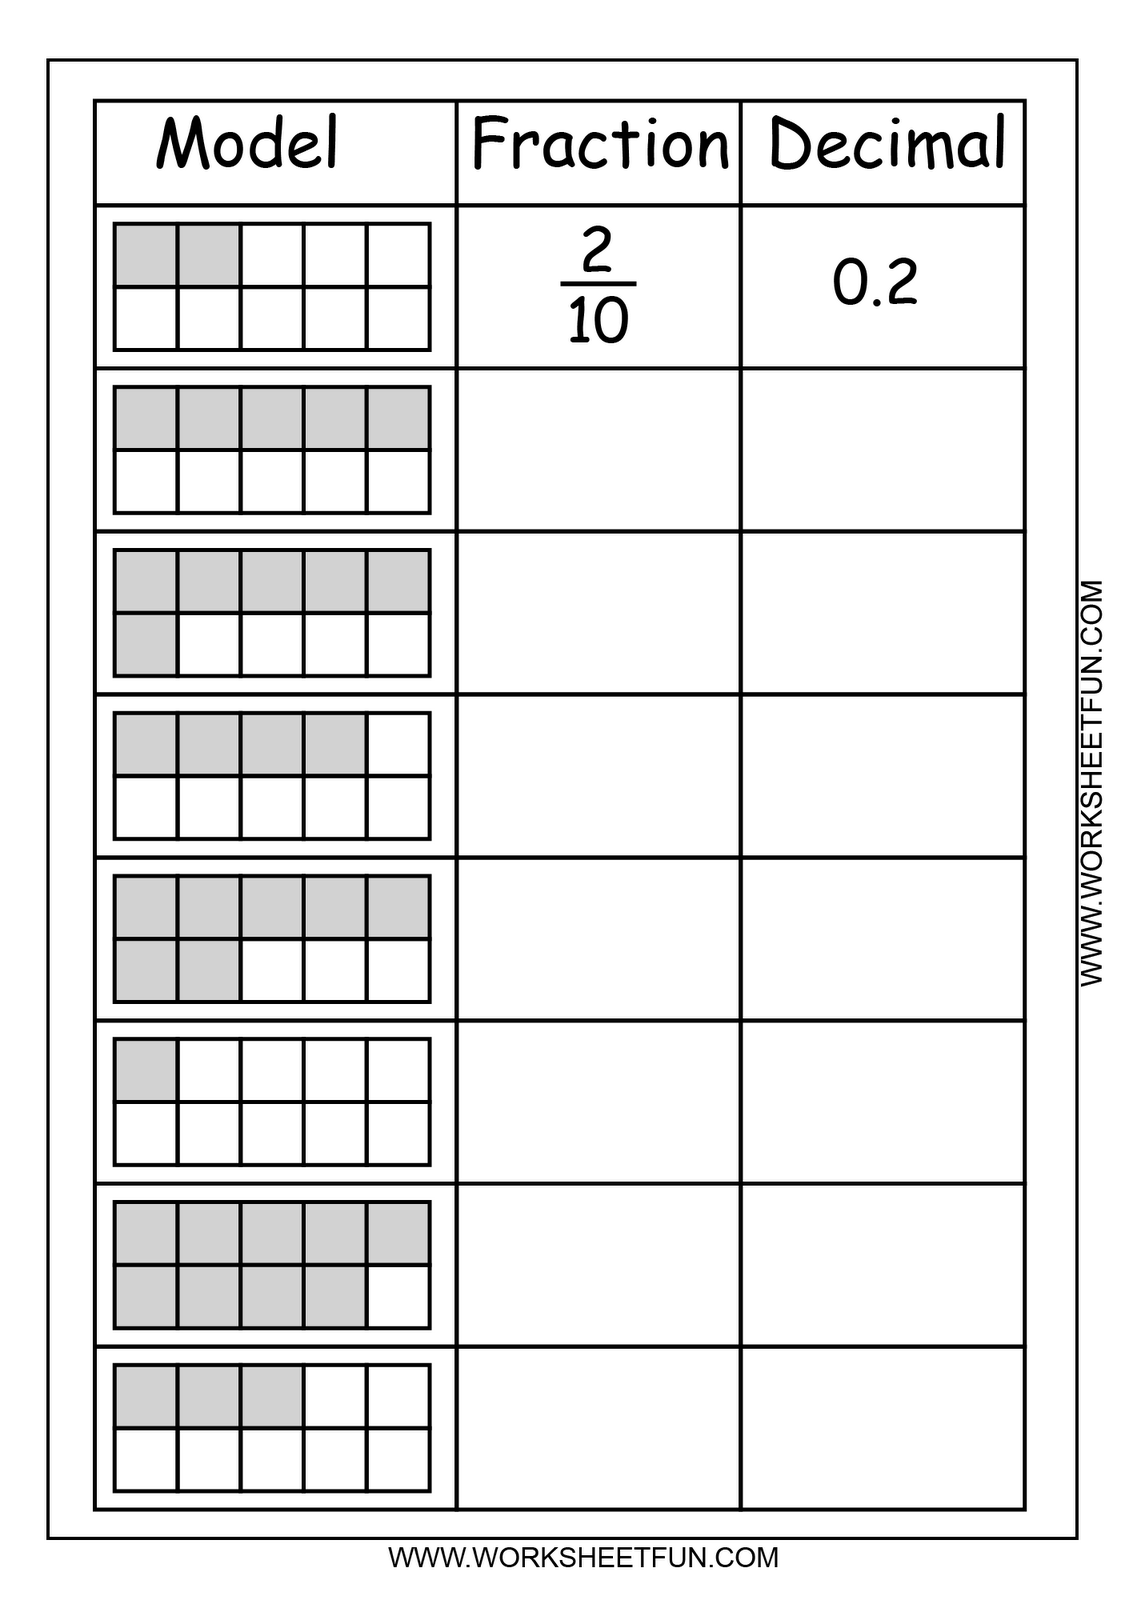 Converting Fractions Into Decimals Worksheet 4th Grade   Printable  Worksheets and Activities for Teachers [ 1600 x 1125 Pixel ]